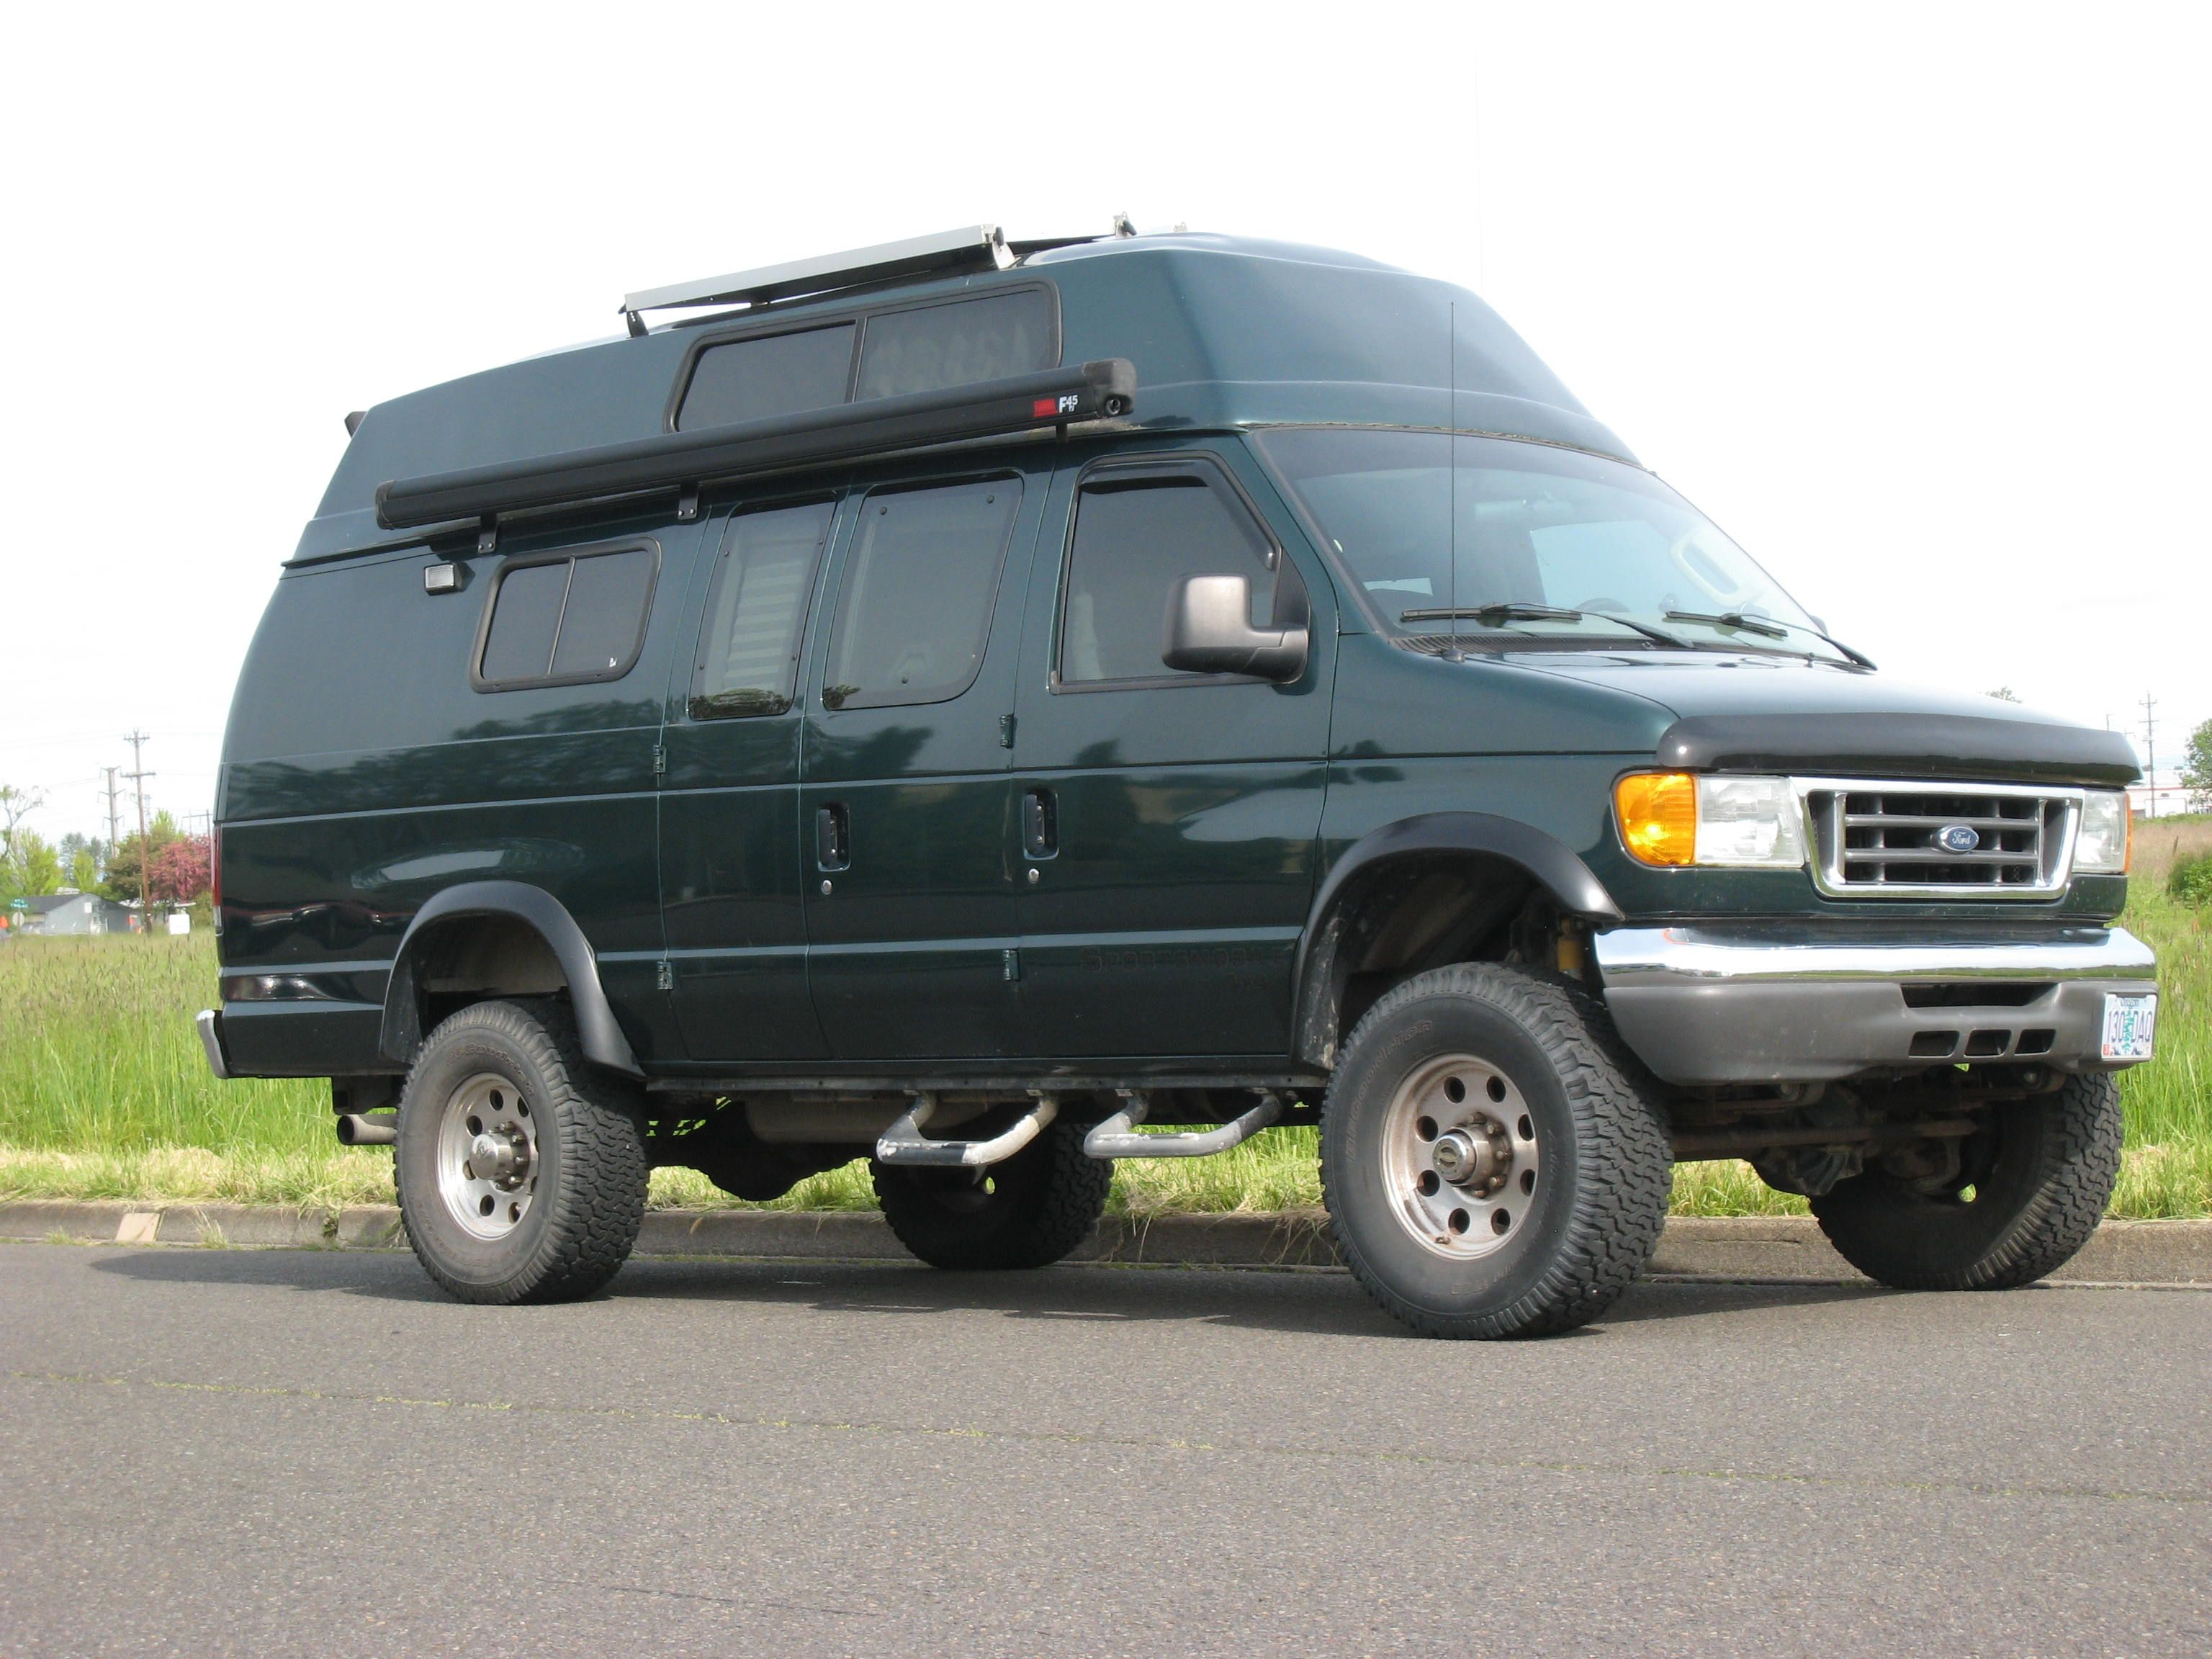 sportsmobile offers 50 camper van plans or will customize to meet your camping travel needs since two and four wheel drives gas and diesel vans